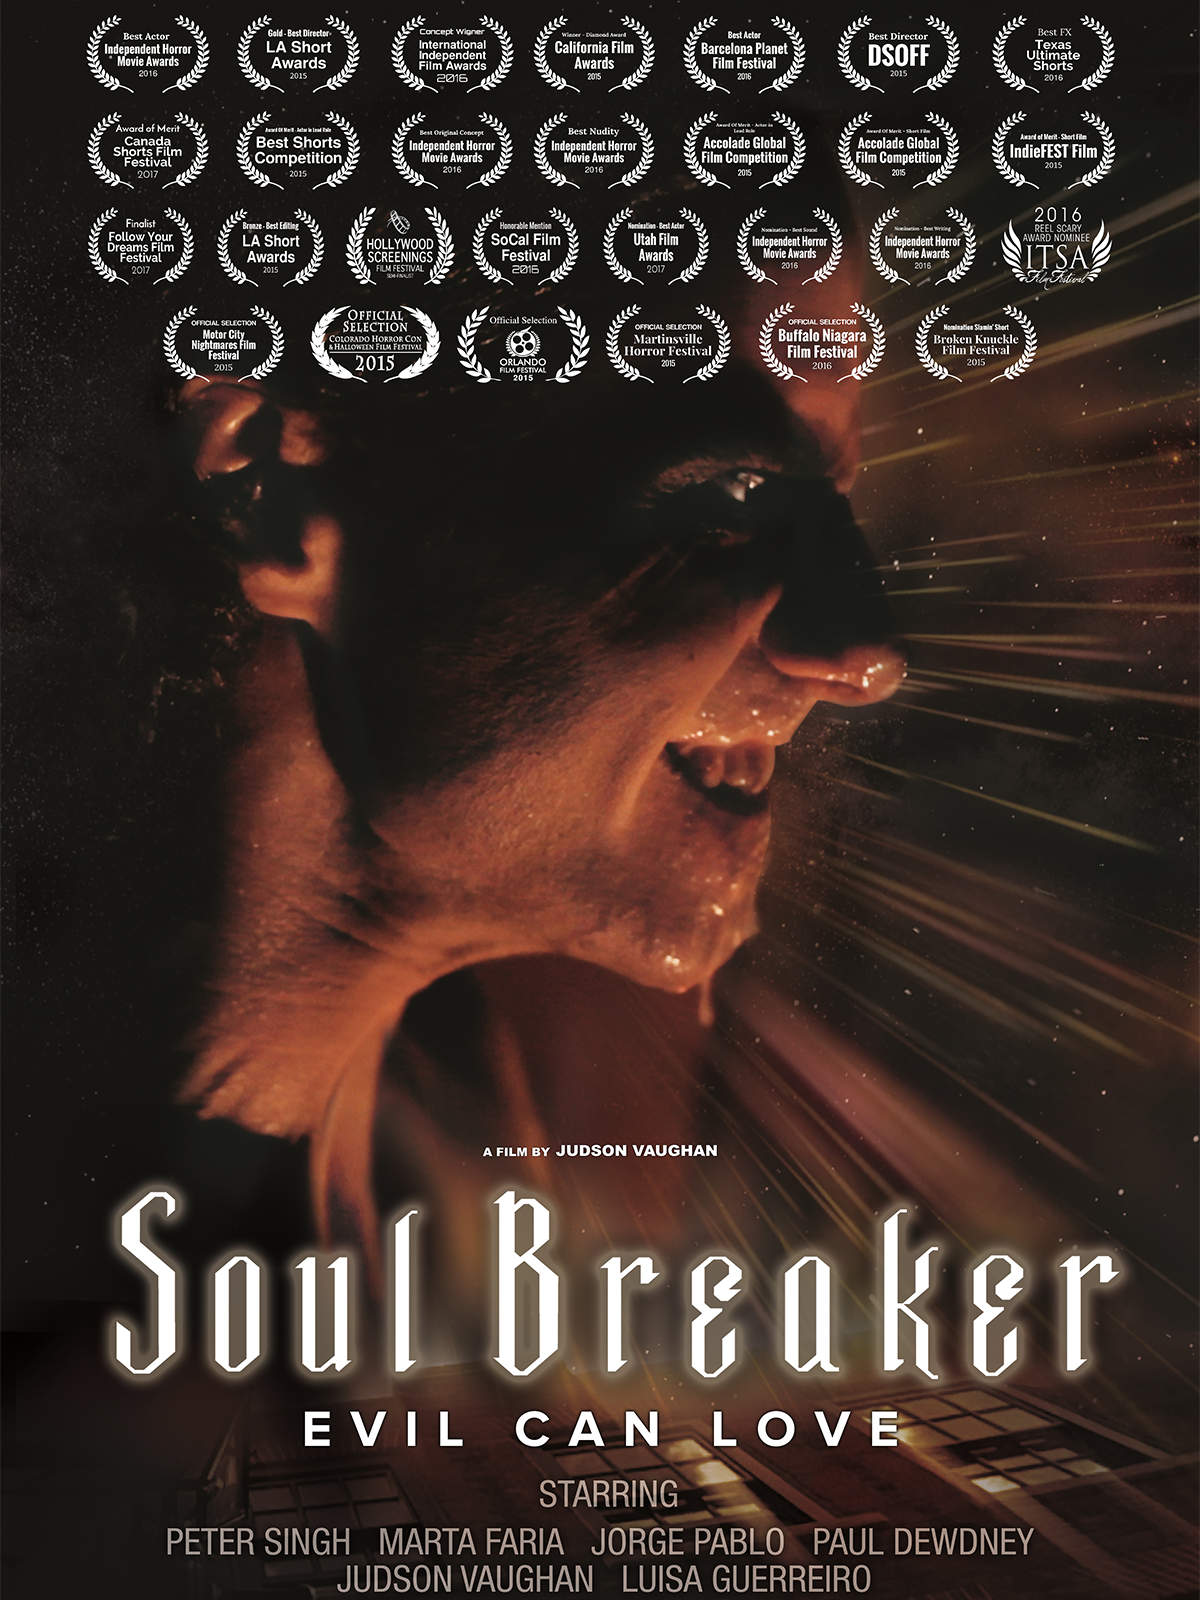 SOUL BREAKER 1200X1600 ARTWORK